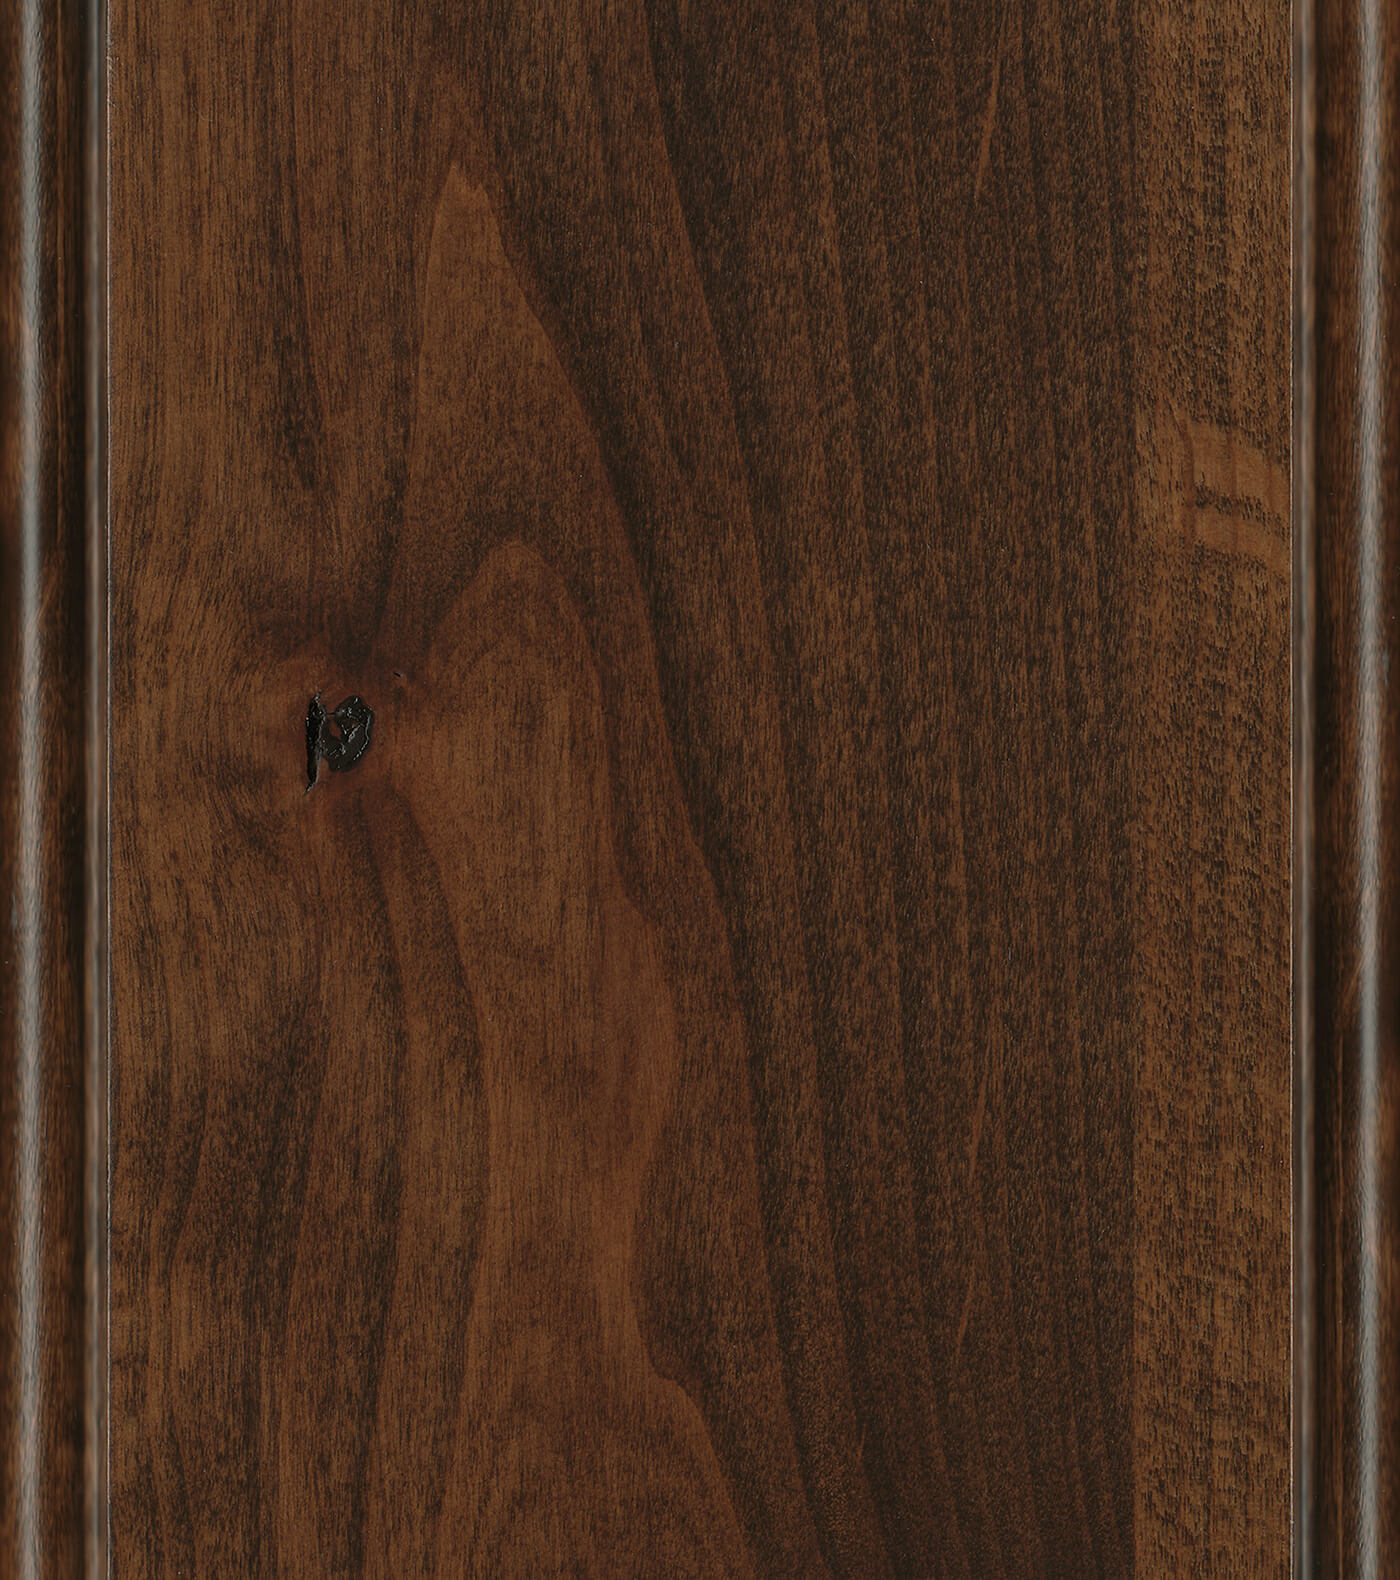 Cappuccino Stain on Knotty Alder